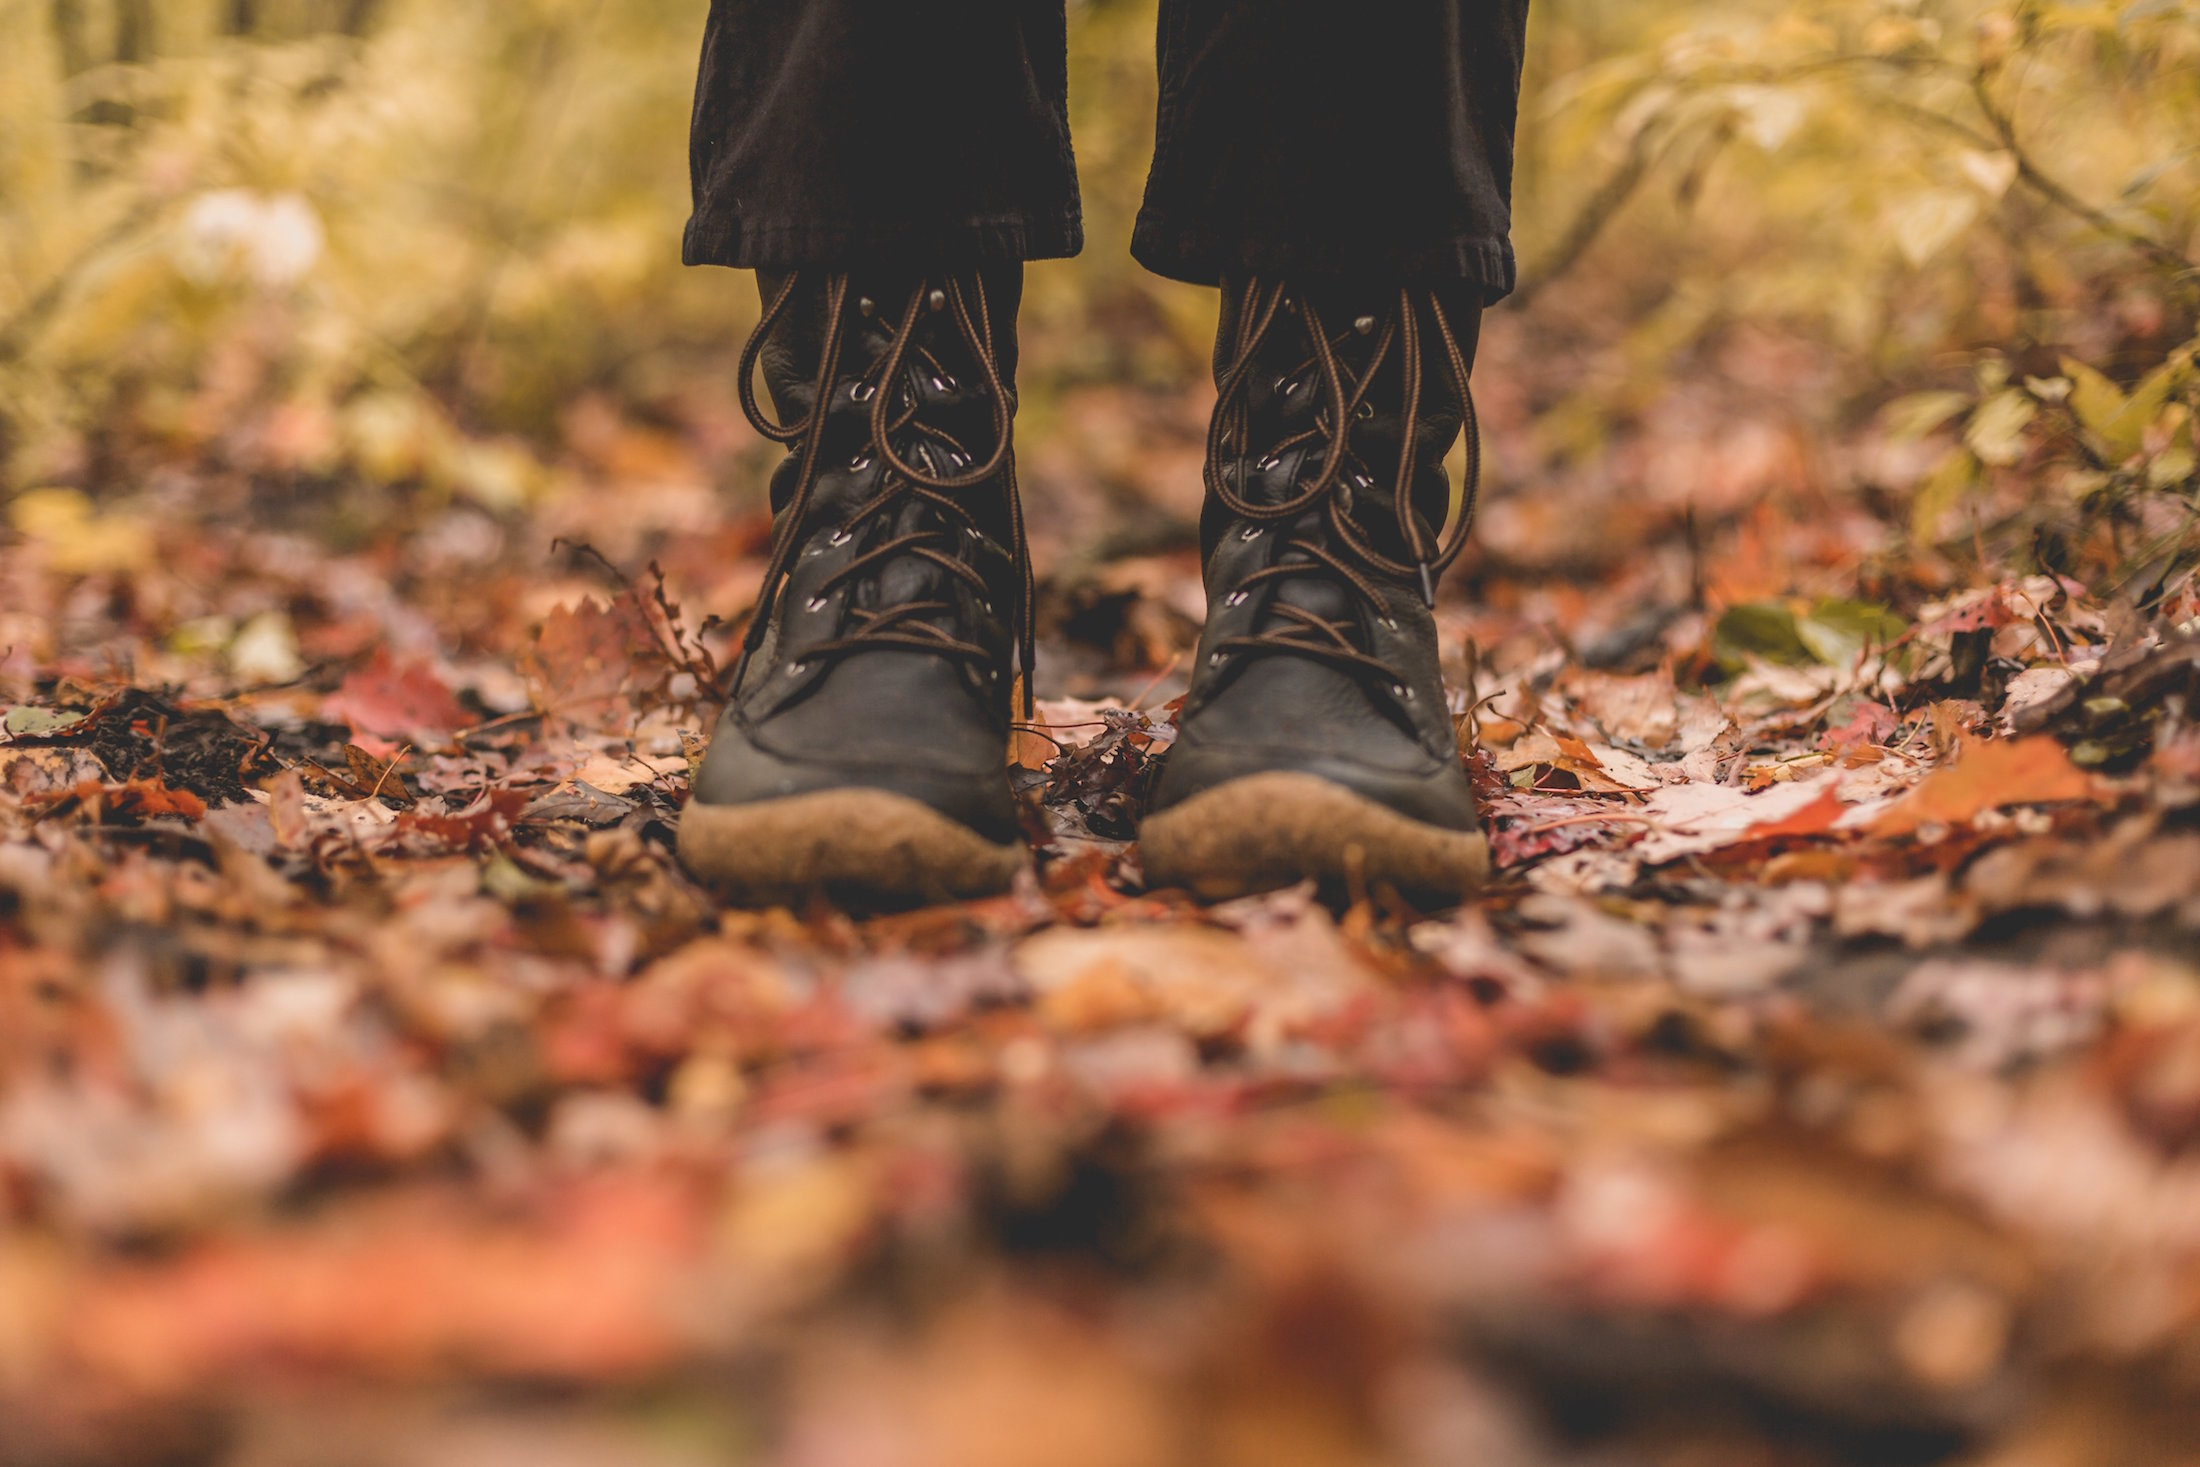 boots-in-autumn-leaves.jpg